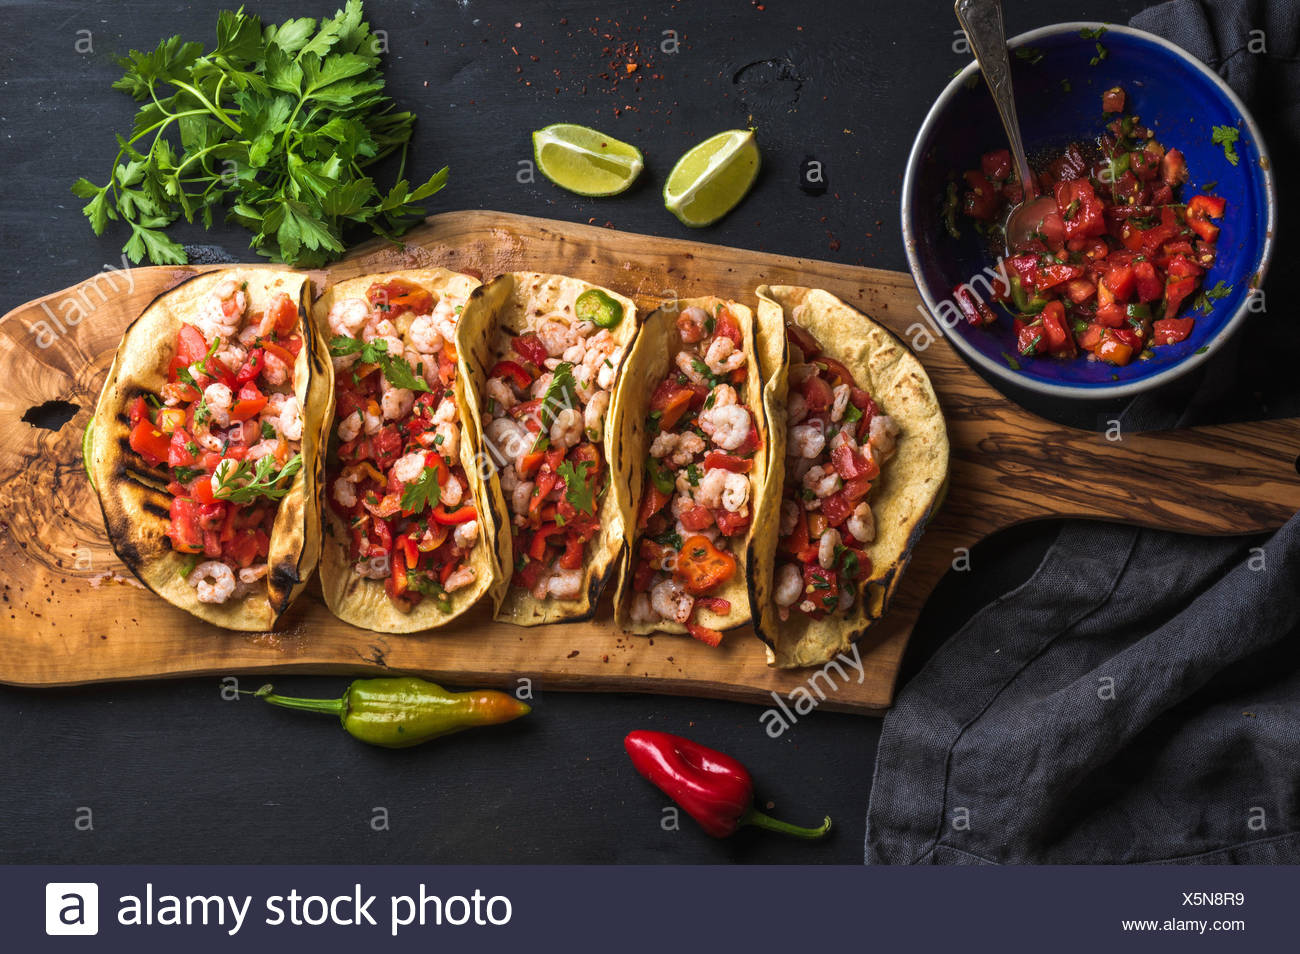 Shrimp tacos with homemade salsa sauce, limes and parsley on wooden board over dark background. Top view. Mexican cuisine - Stock Image